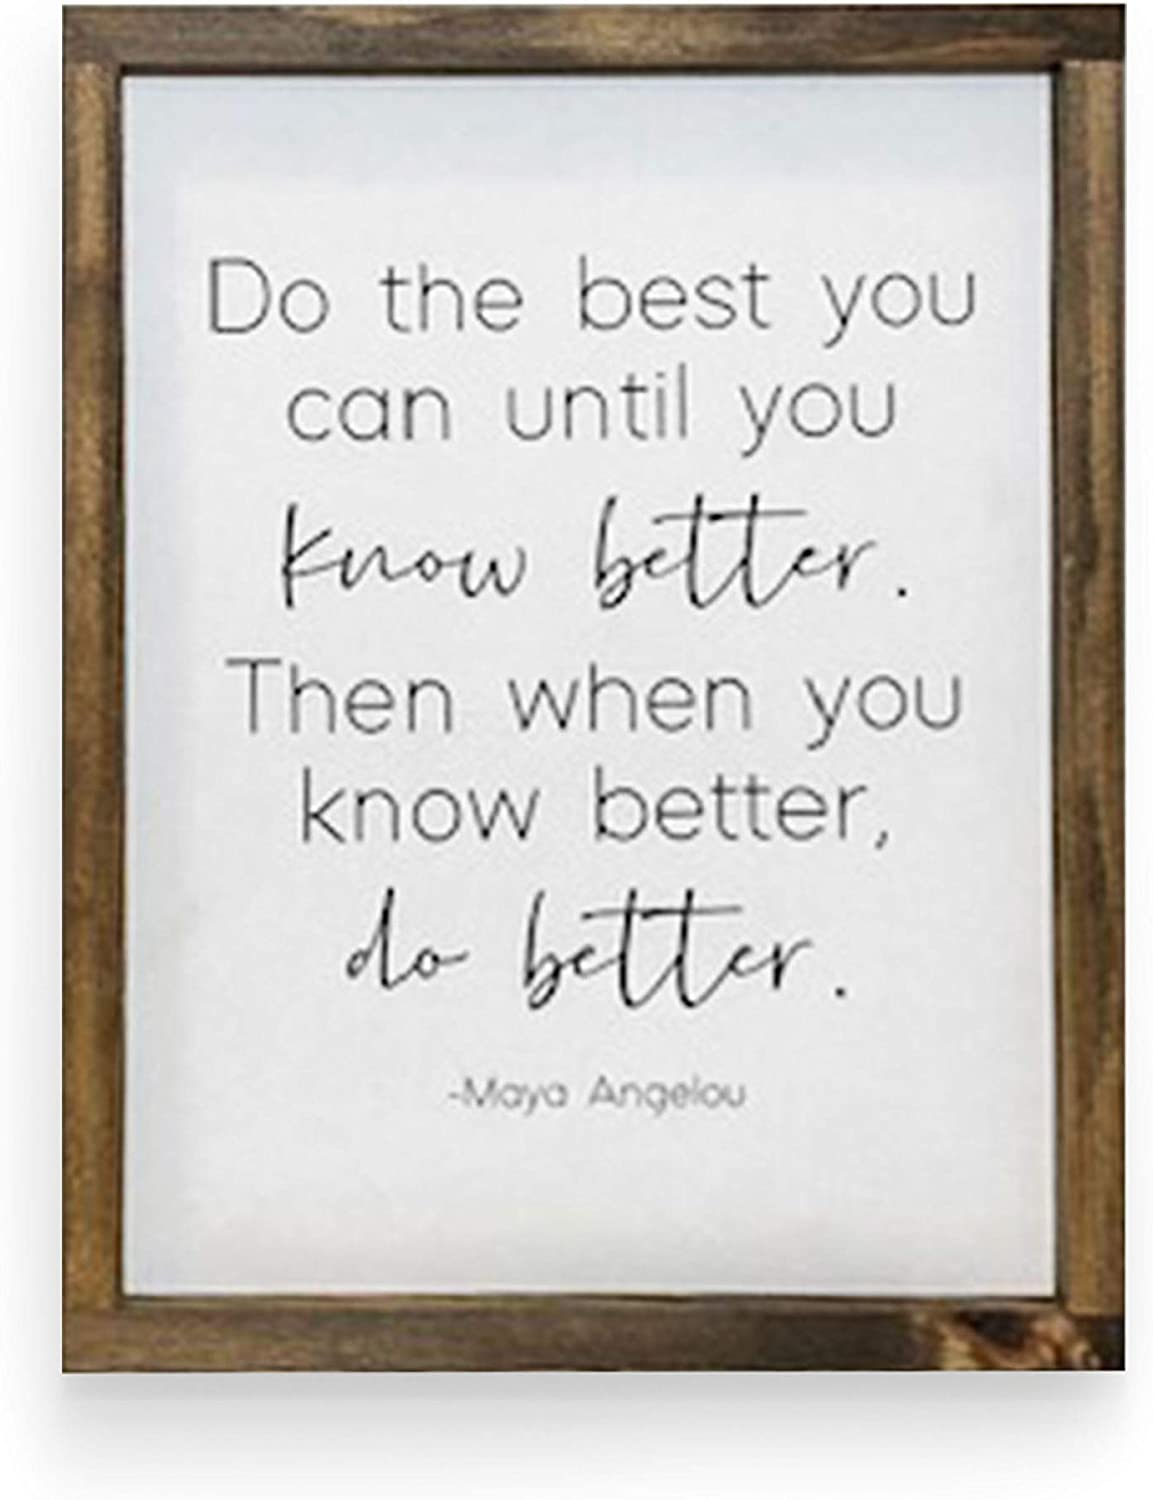 Maya Angelou Wall Art Inspirational Quote Do The Best You Can Until You Know Better - 14 x 18 inches Wood Framed Sign - Made in U.S.A.